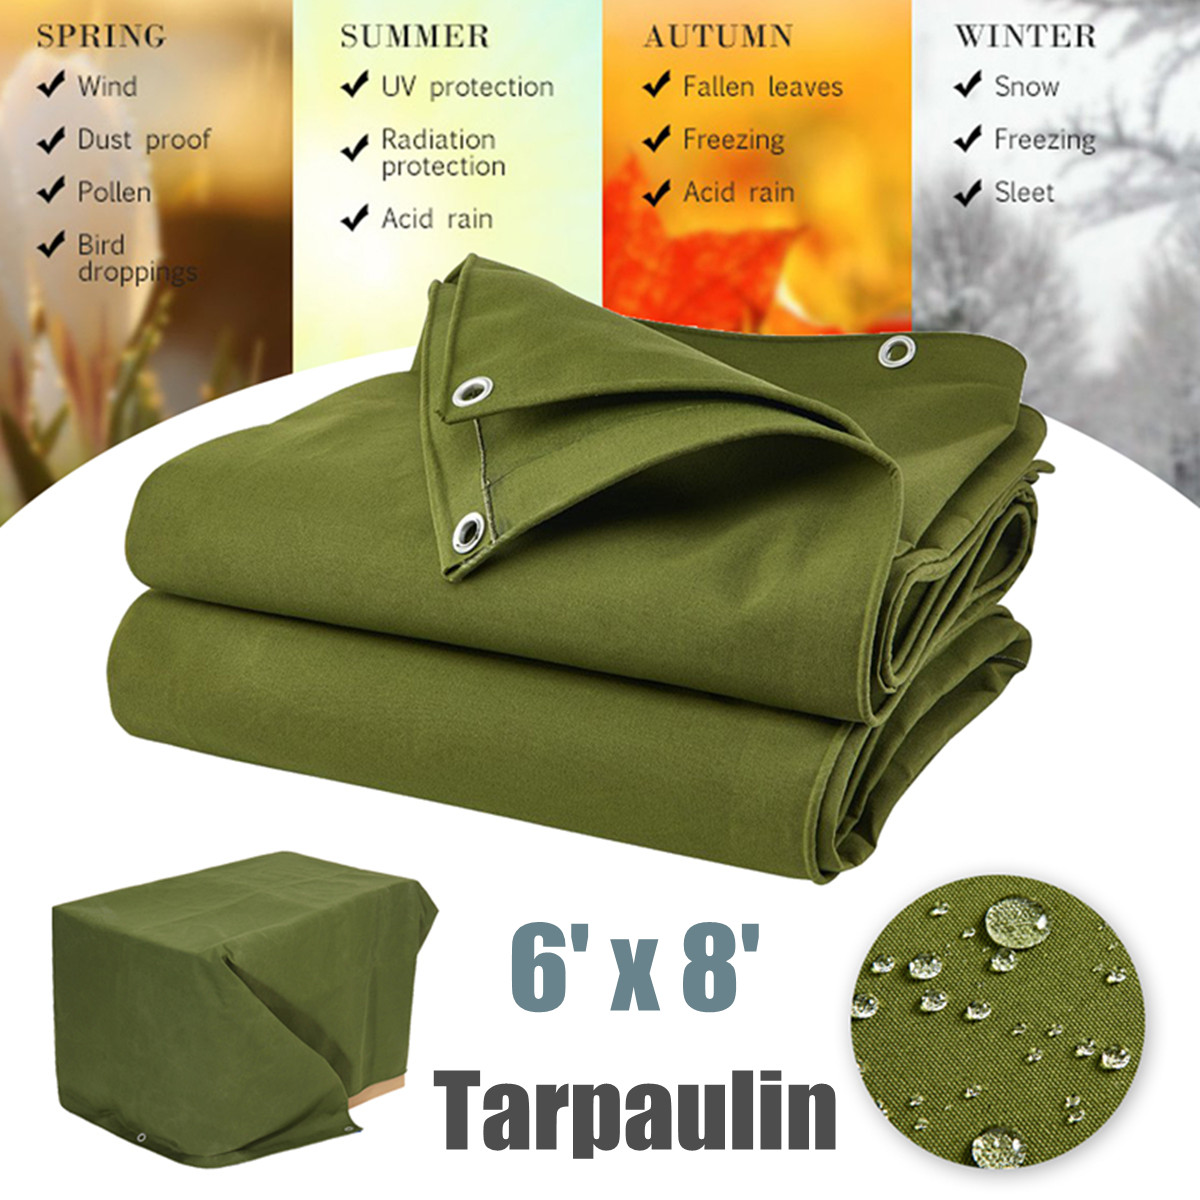 Large Waterproof Canvas Sunshade Cloth Canopy Tarp Tarpaulin Dustproof Shelter Outdoor Awning Accessories Green 6x8FT/1.8mx2.4m